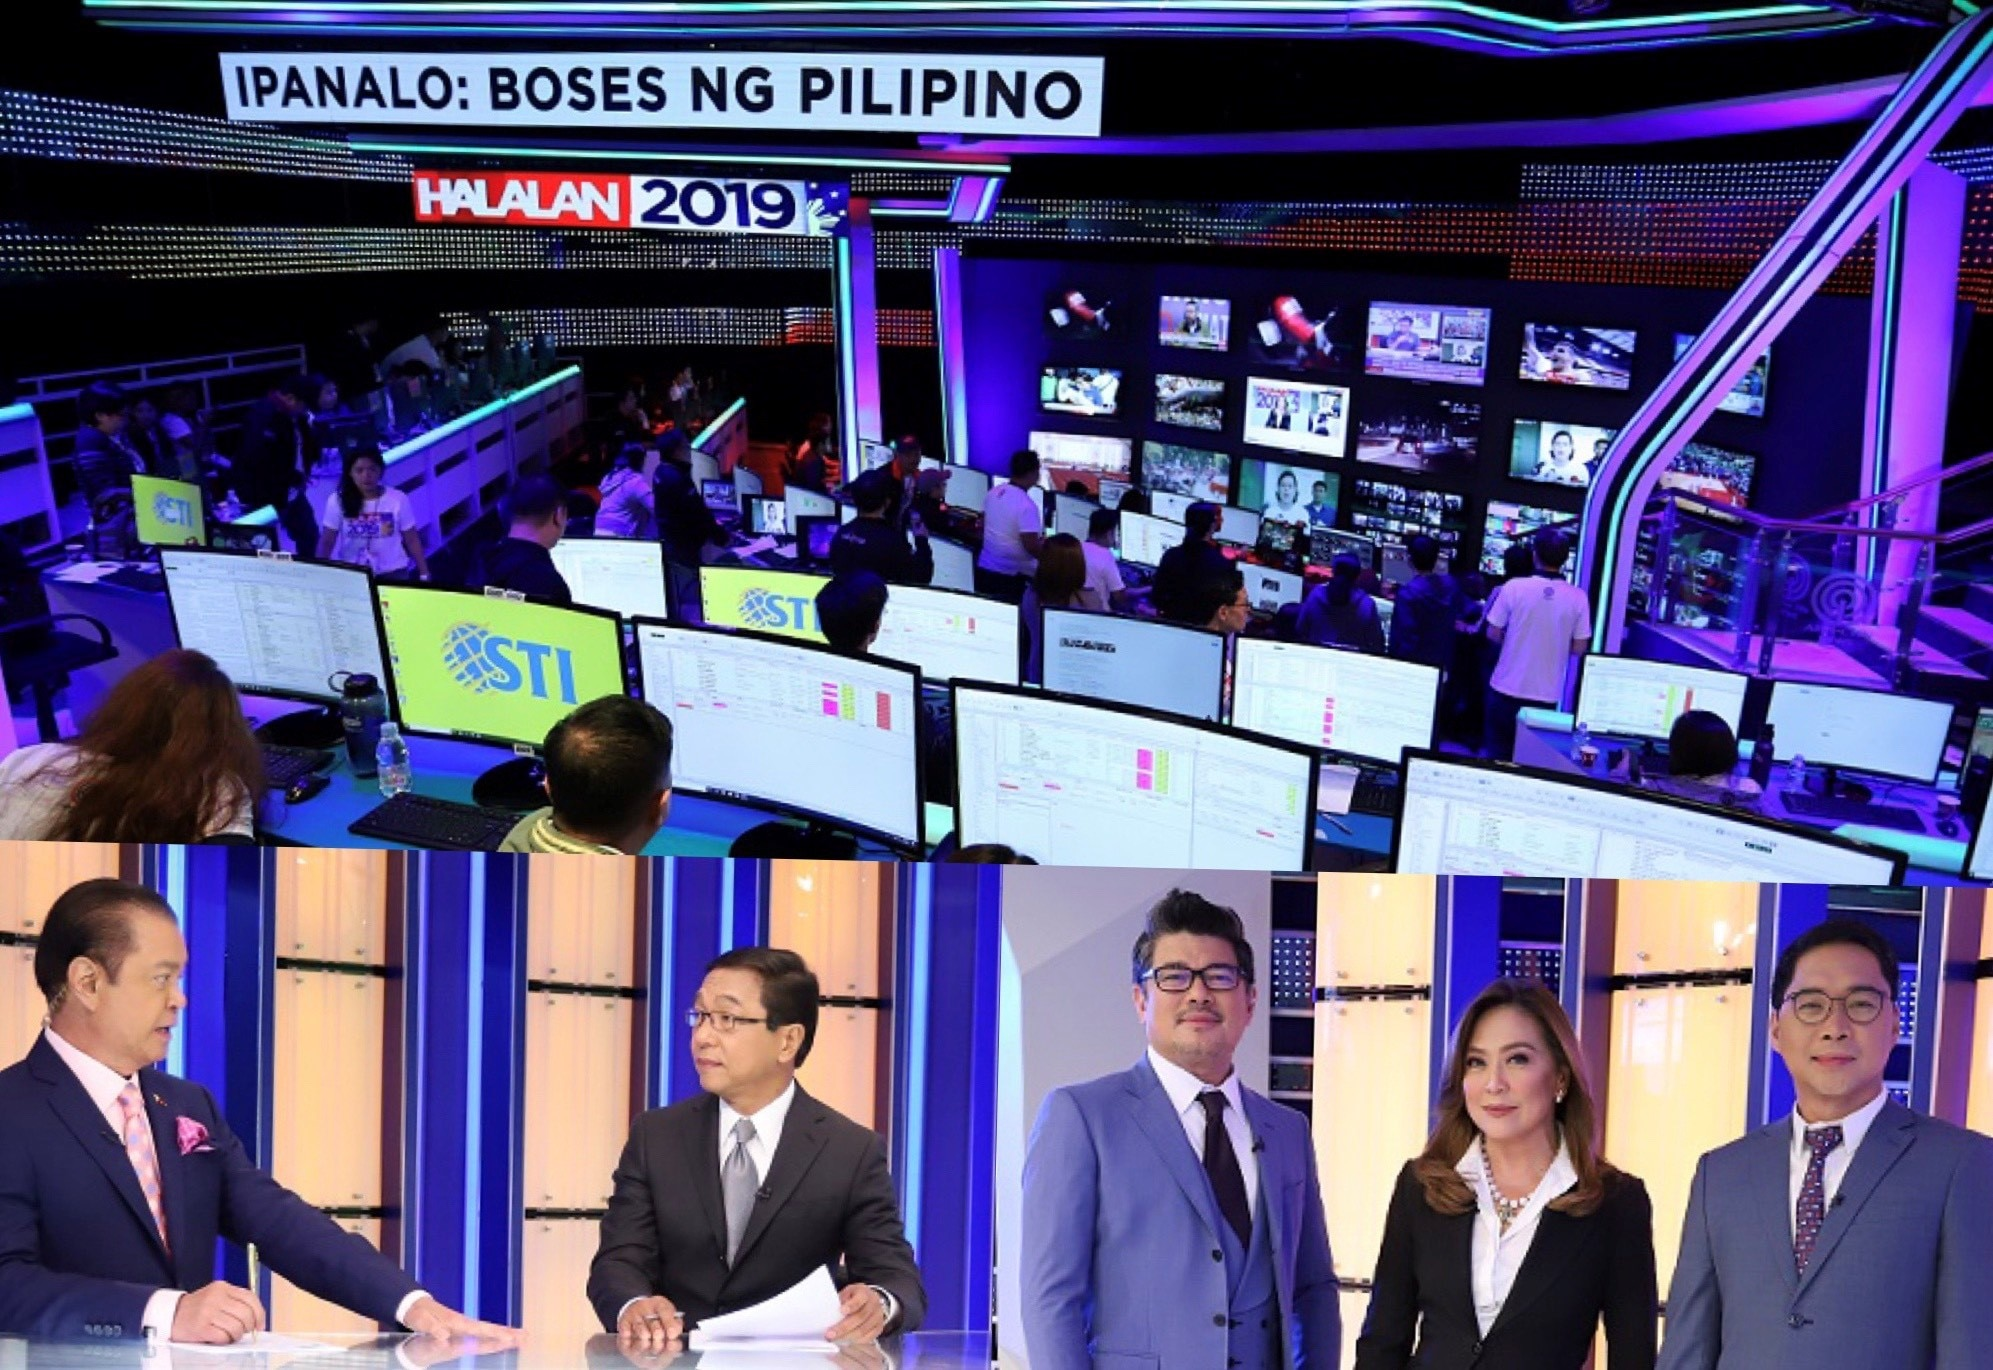 ABS-CBN News delivers most watched election coverage on TV and online